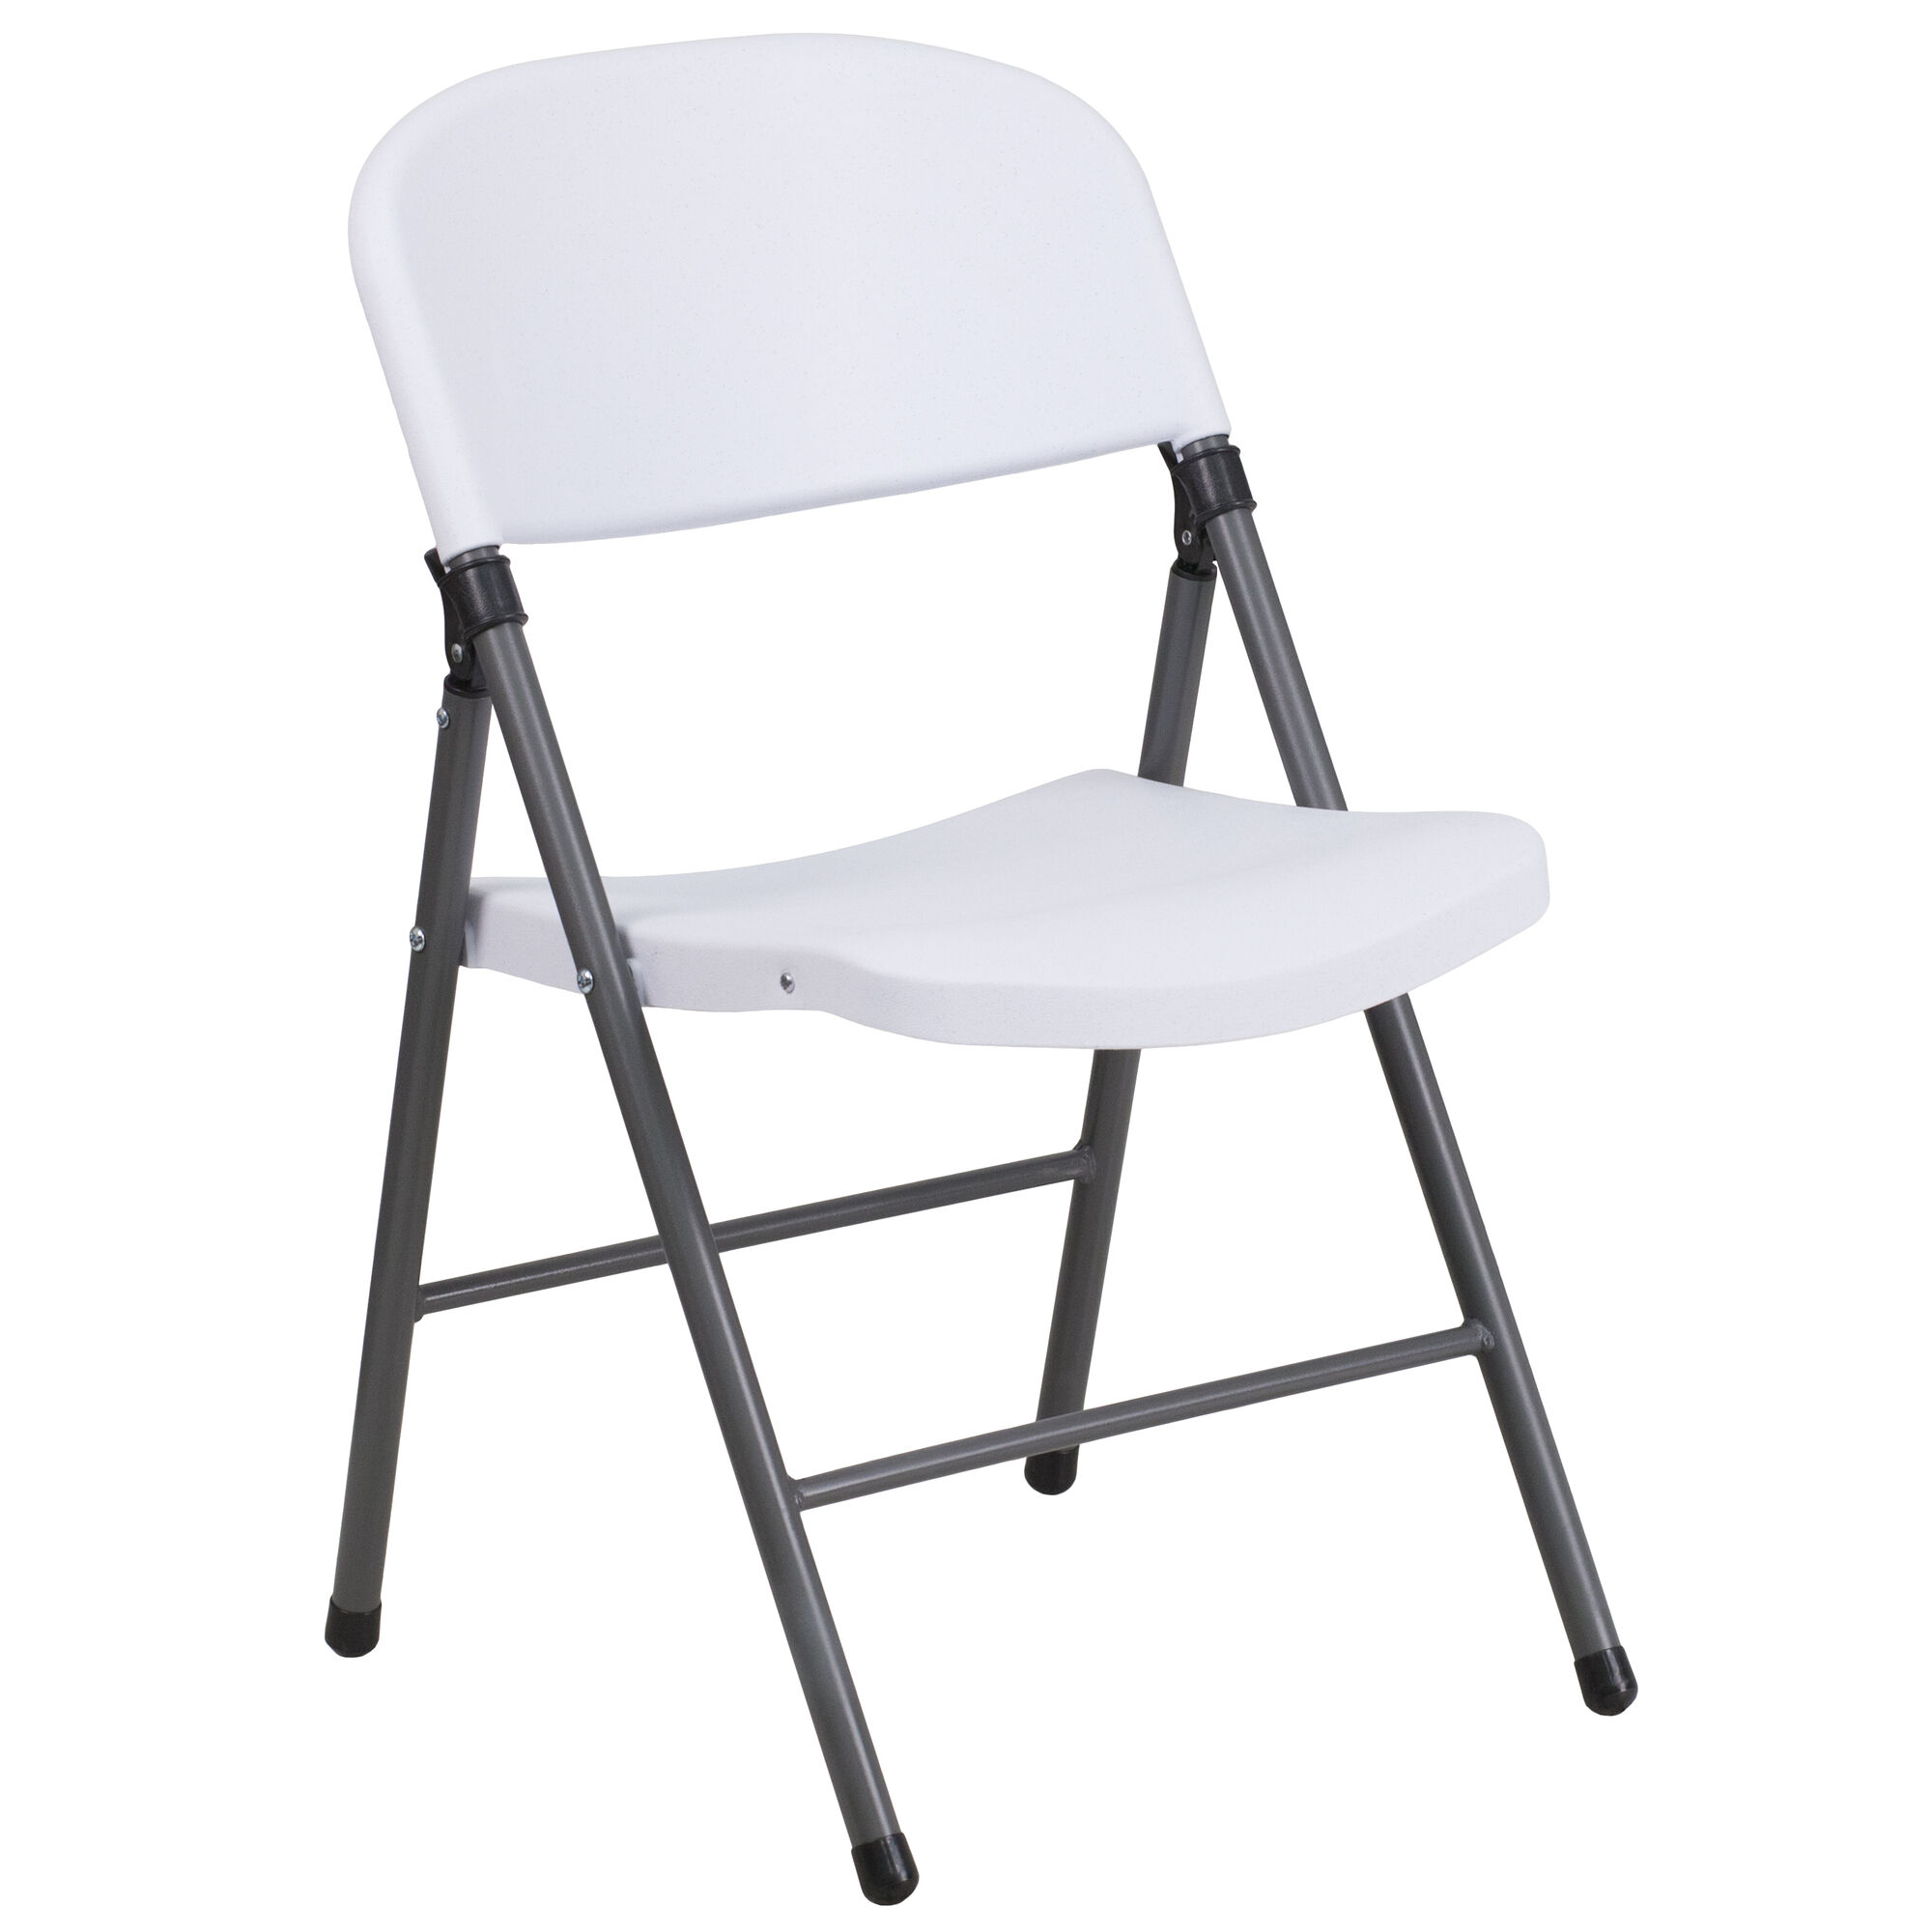 Awe Inspiring Hercules Series 330 Lb Capacity Granite White Plastic Folding Chair With Charcoal Frame Interior Design Ideas Apansoteloinfo